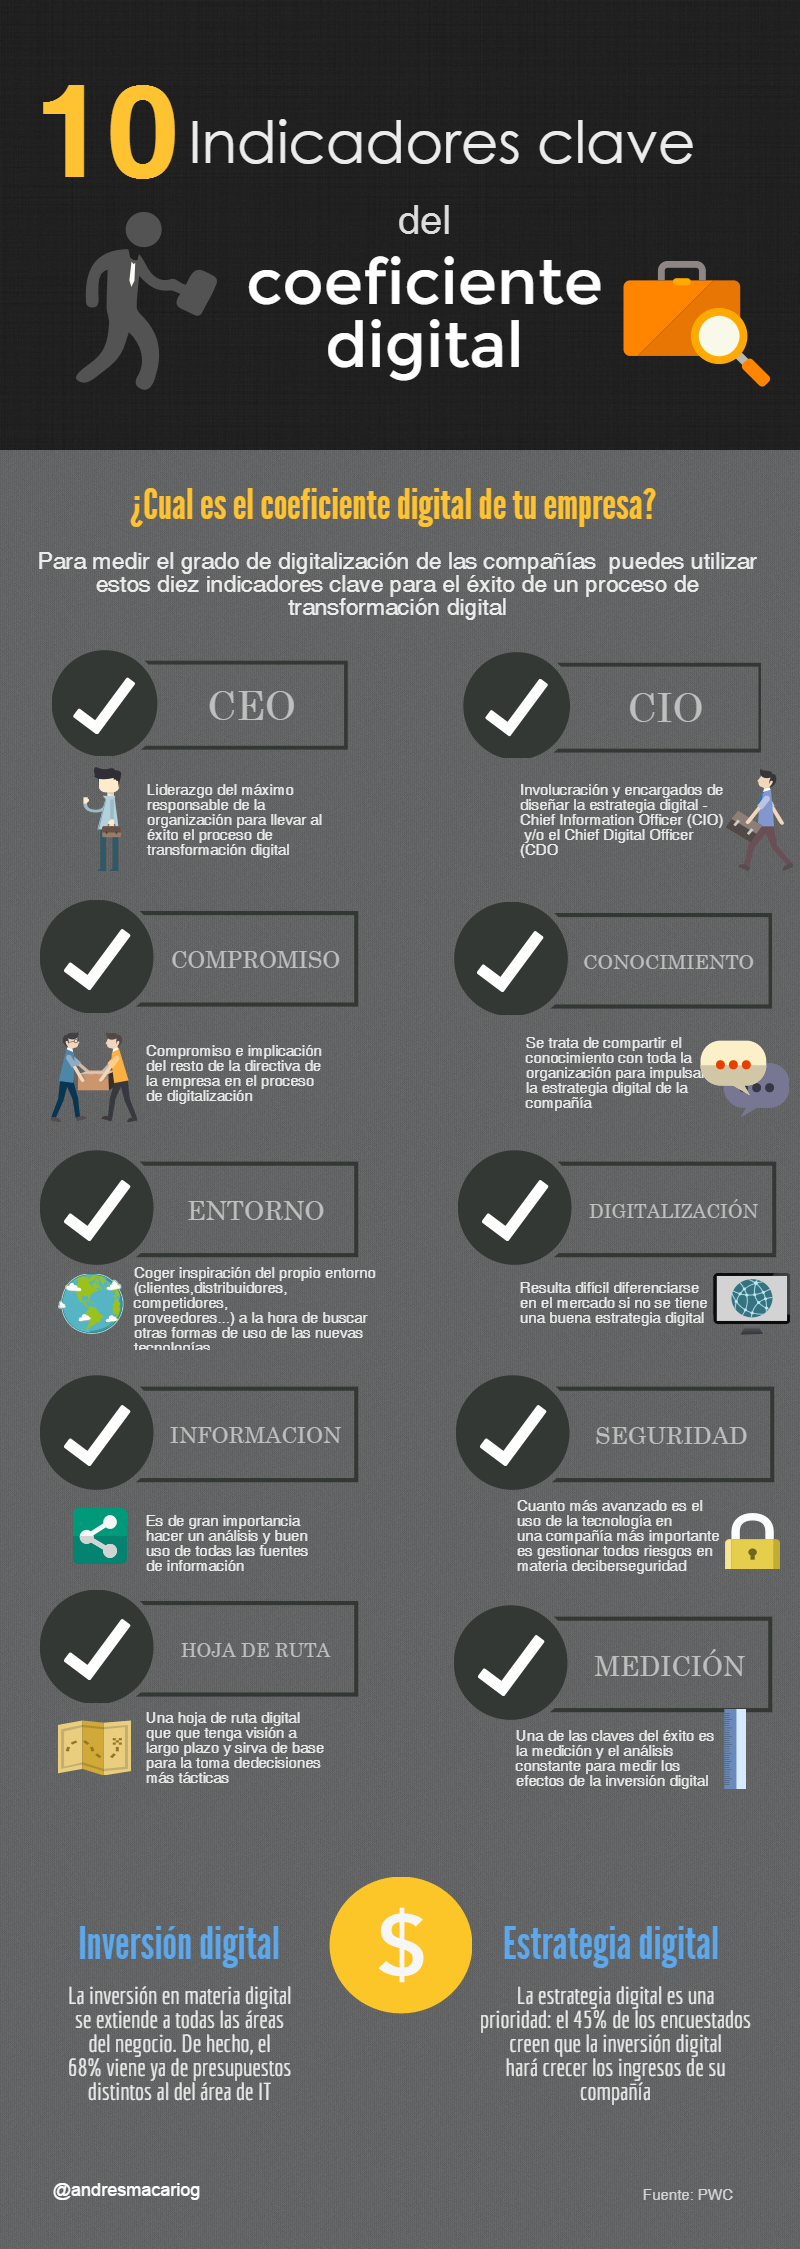 10 indicadores clave del coeficiente digital